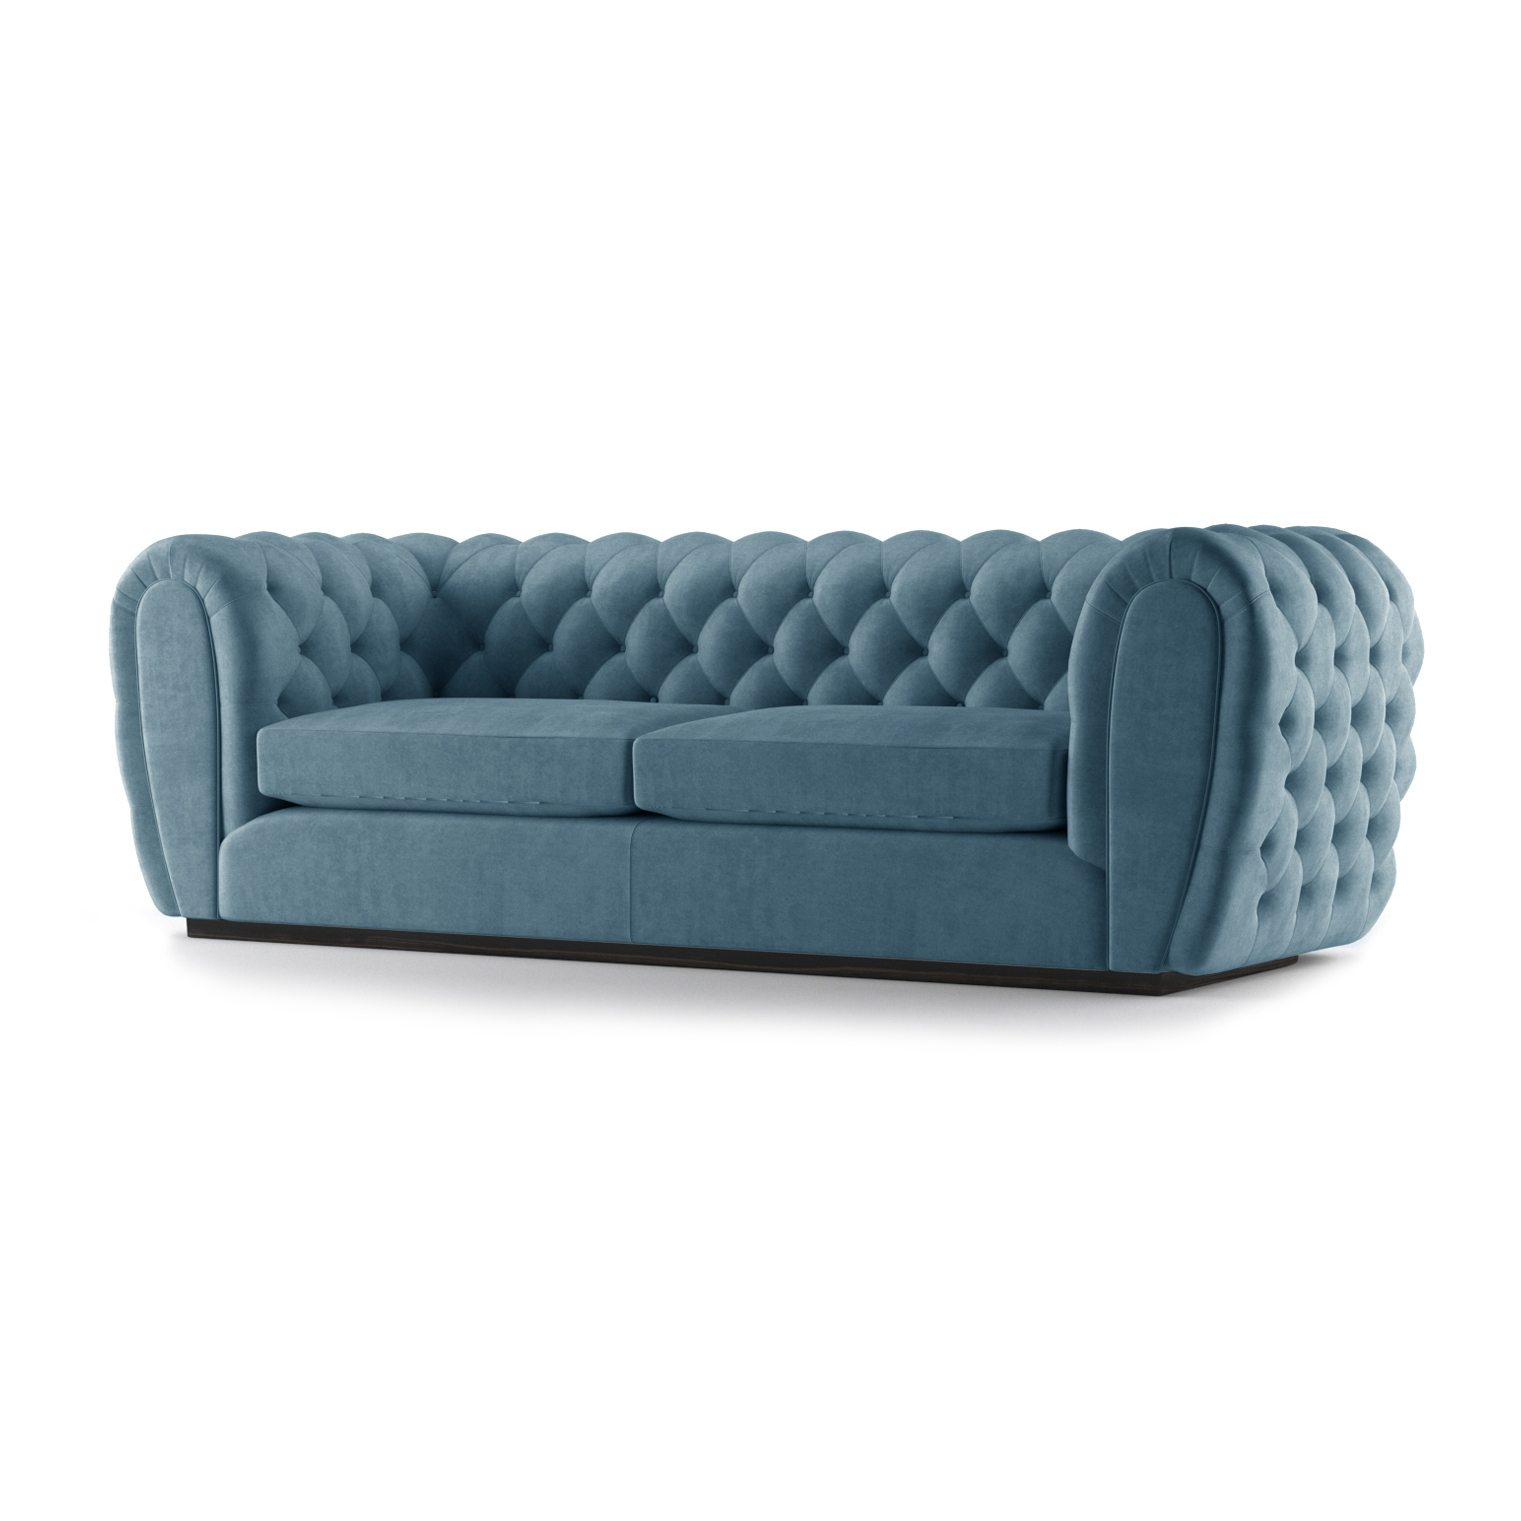 Olivier Three and a Half Seater Sofa by Bonham & Bonham Teal 02